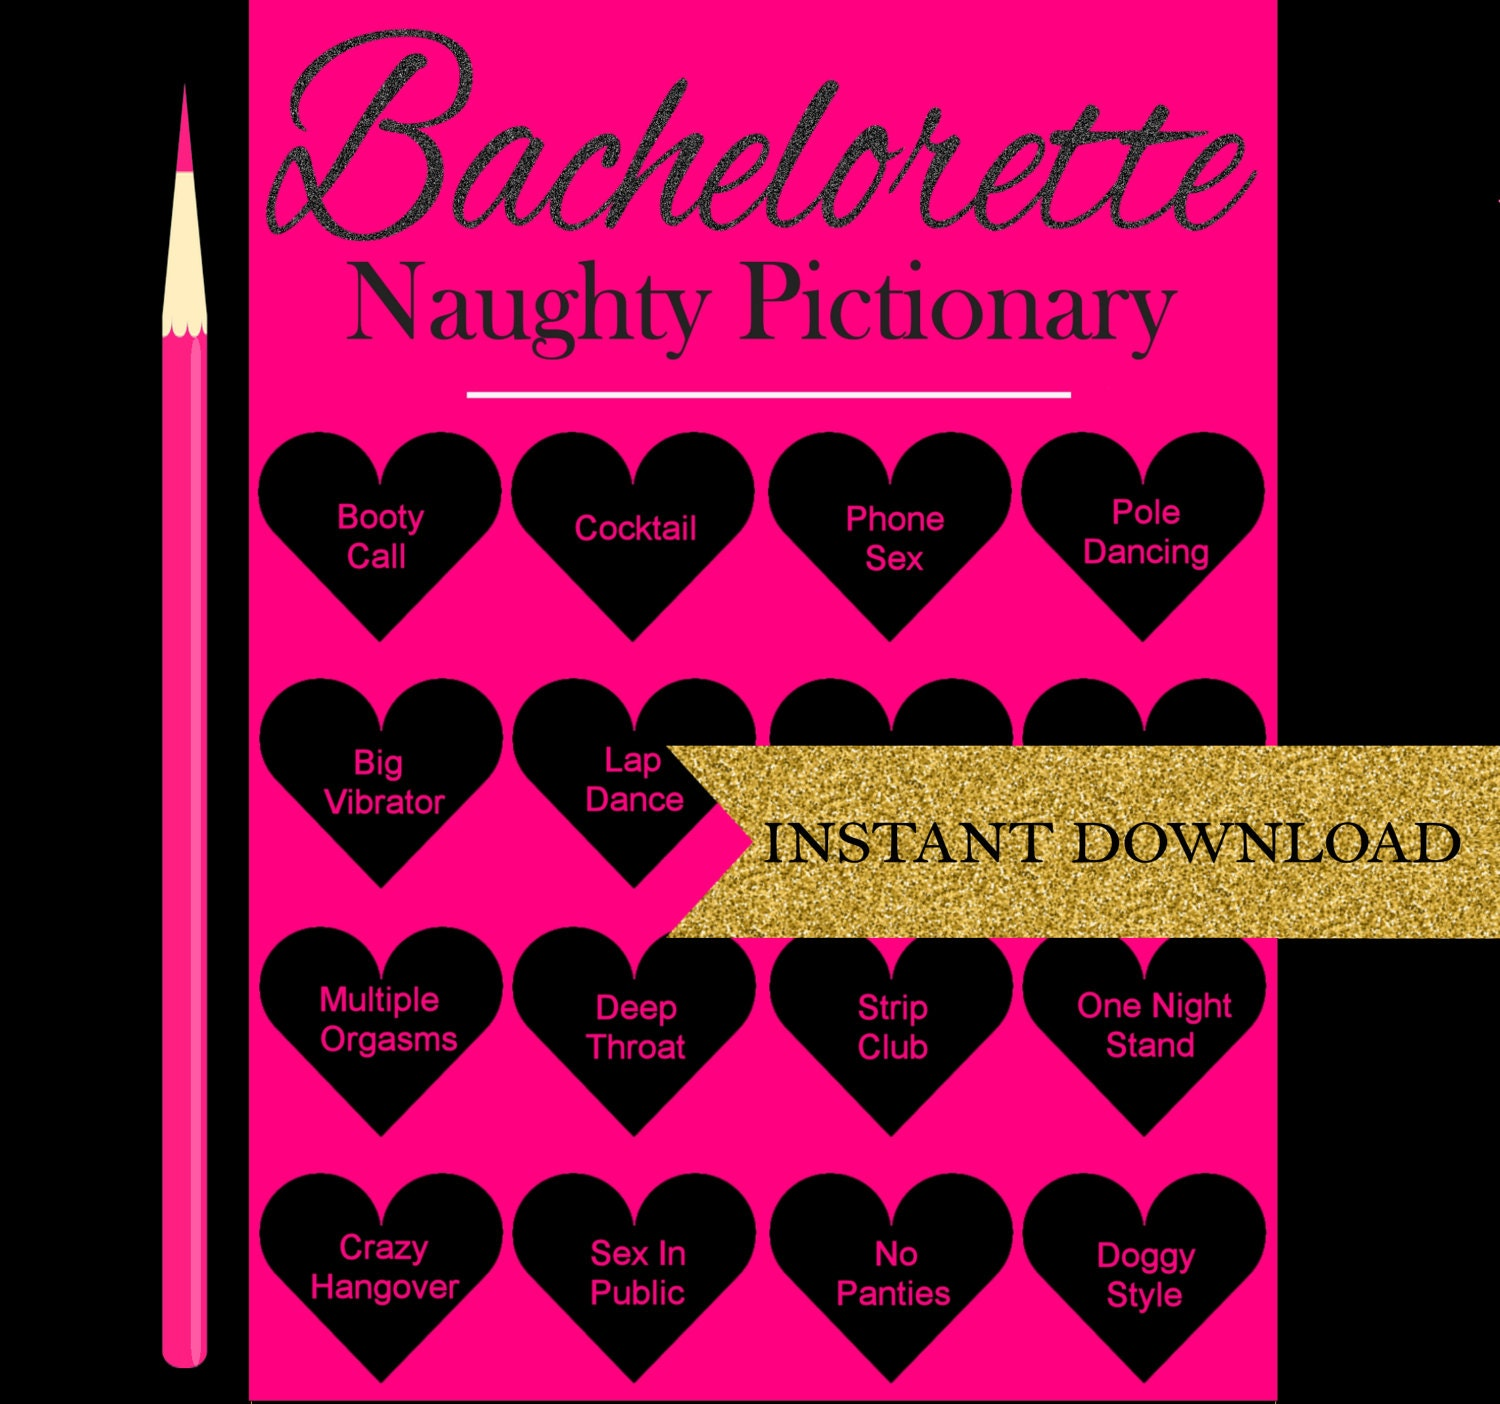 Dirty Pictionary Bachelorette Party Games Printable Hen